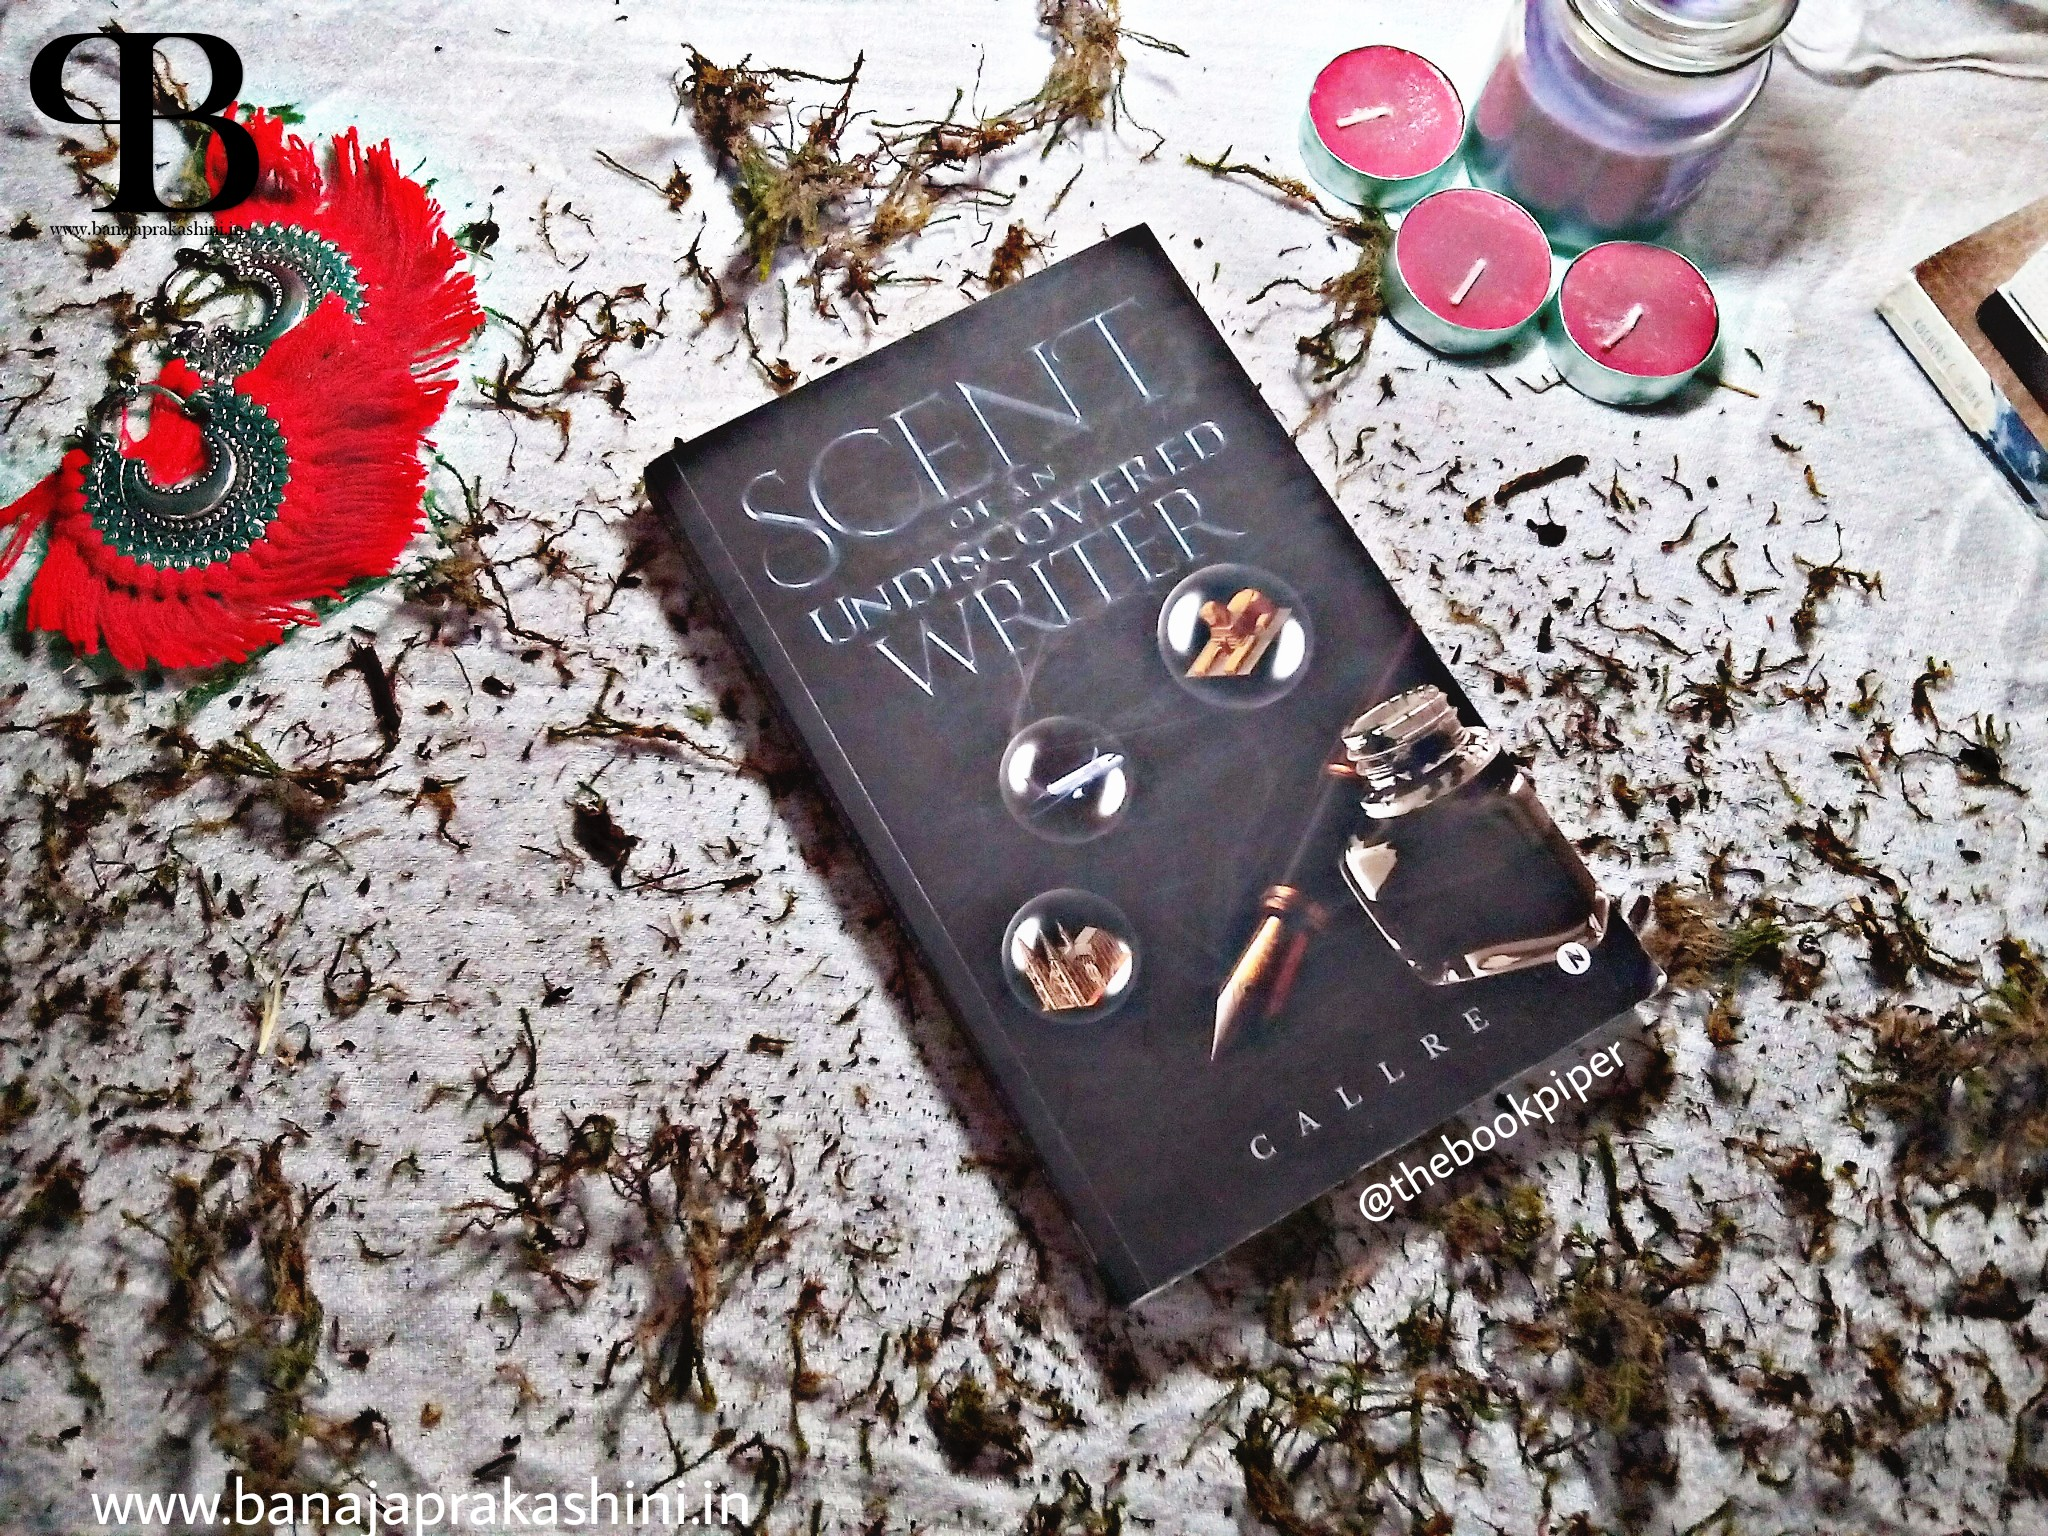 Review Pen: Scent Of An Undiscovered Writer By Callre